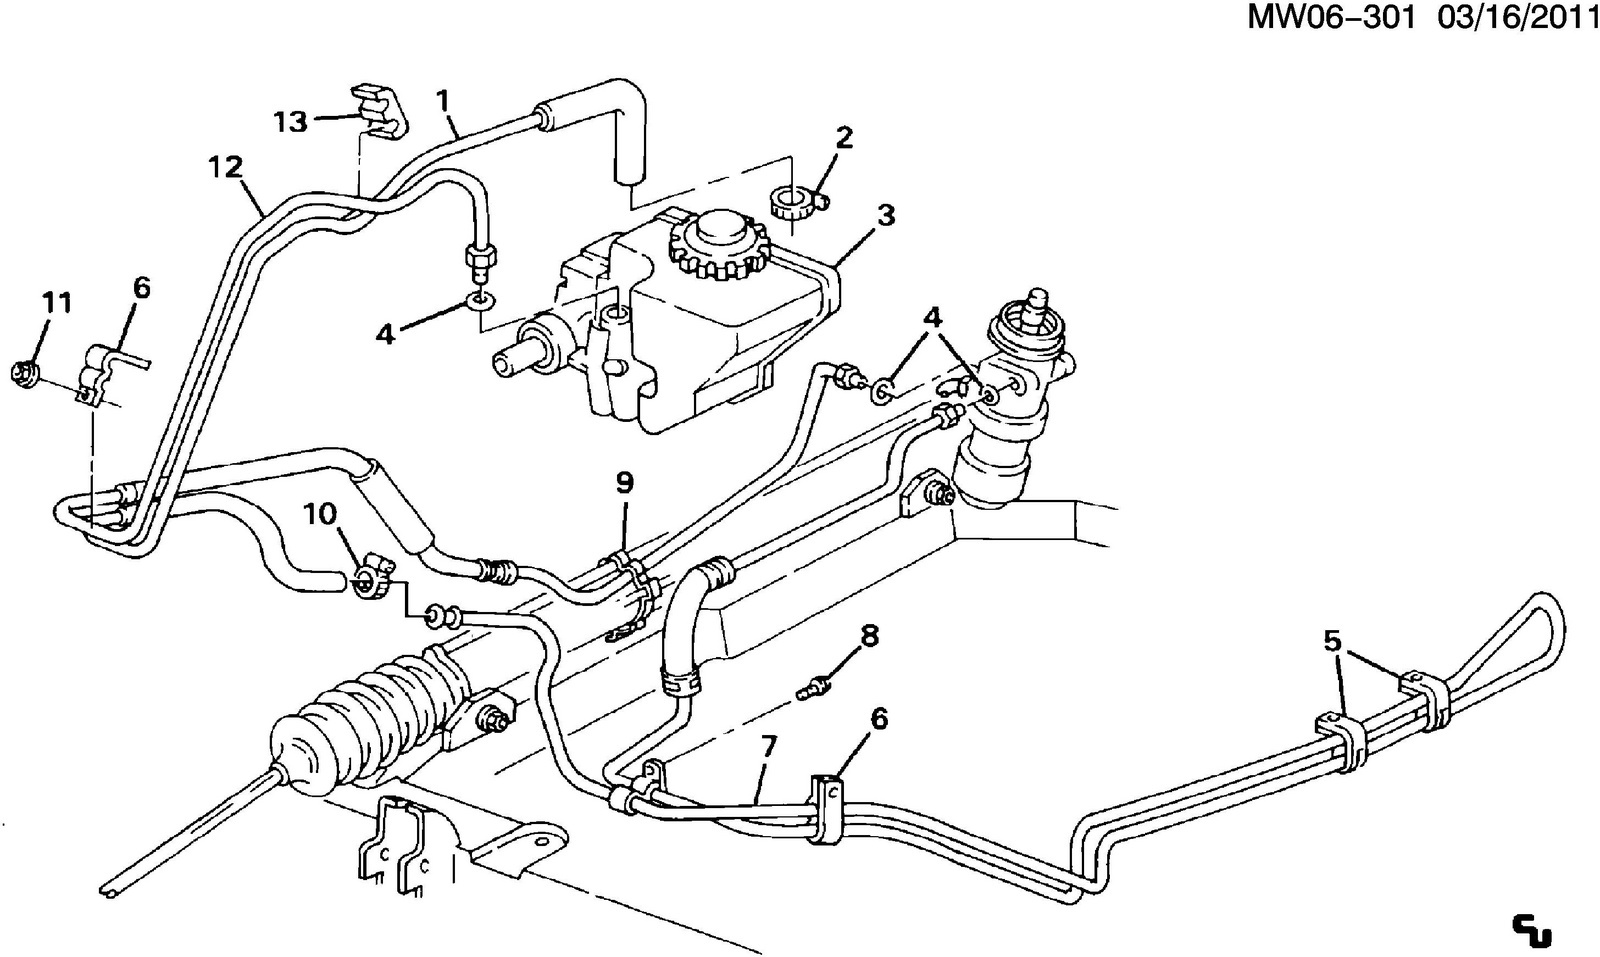 Discussion T16816 ds577757 on 2003 toyota camry vacuum diagram